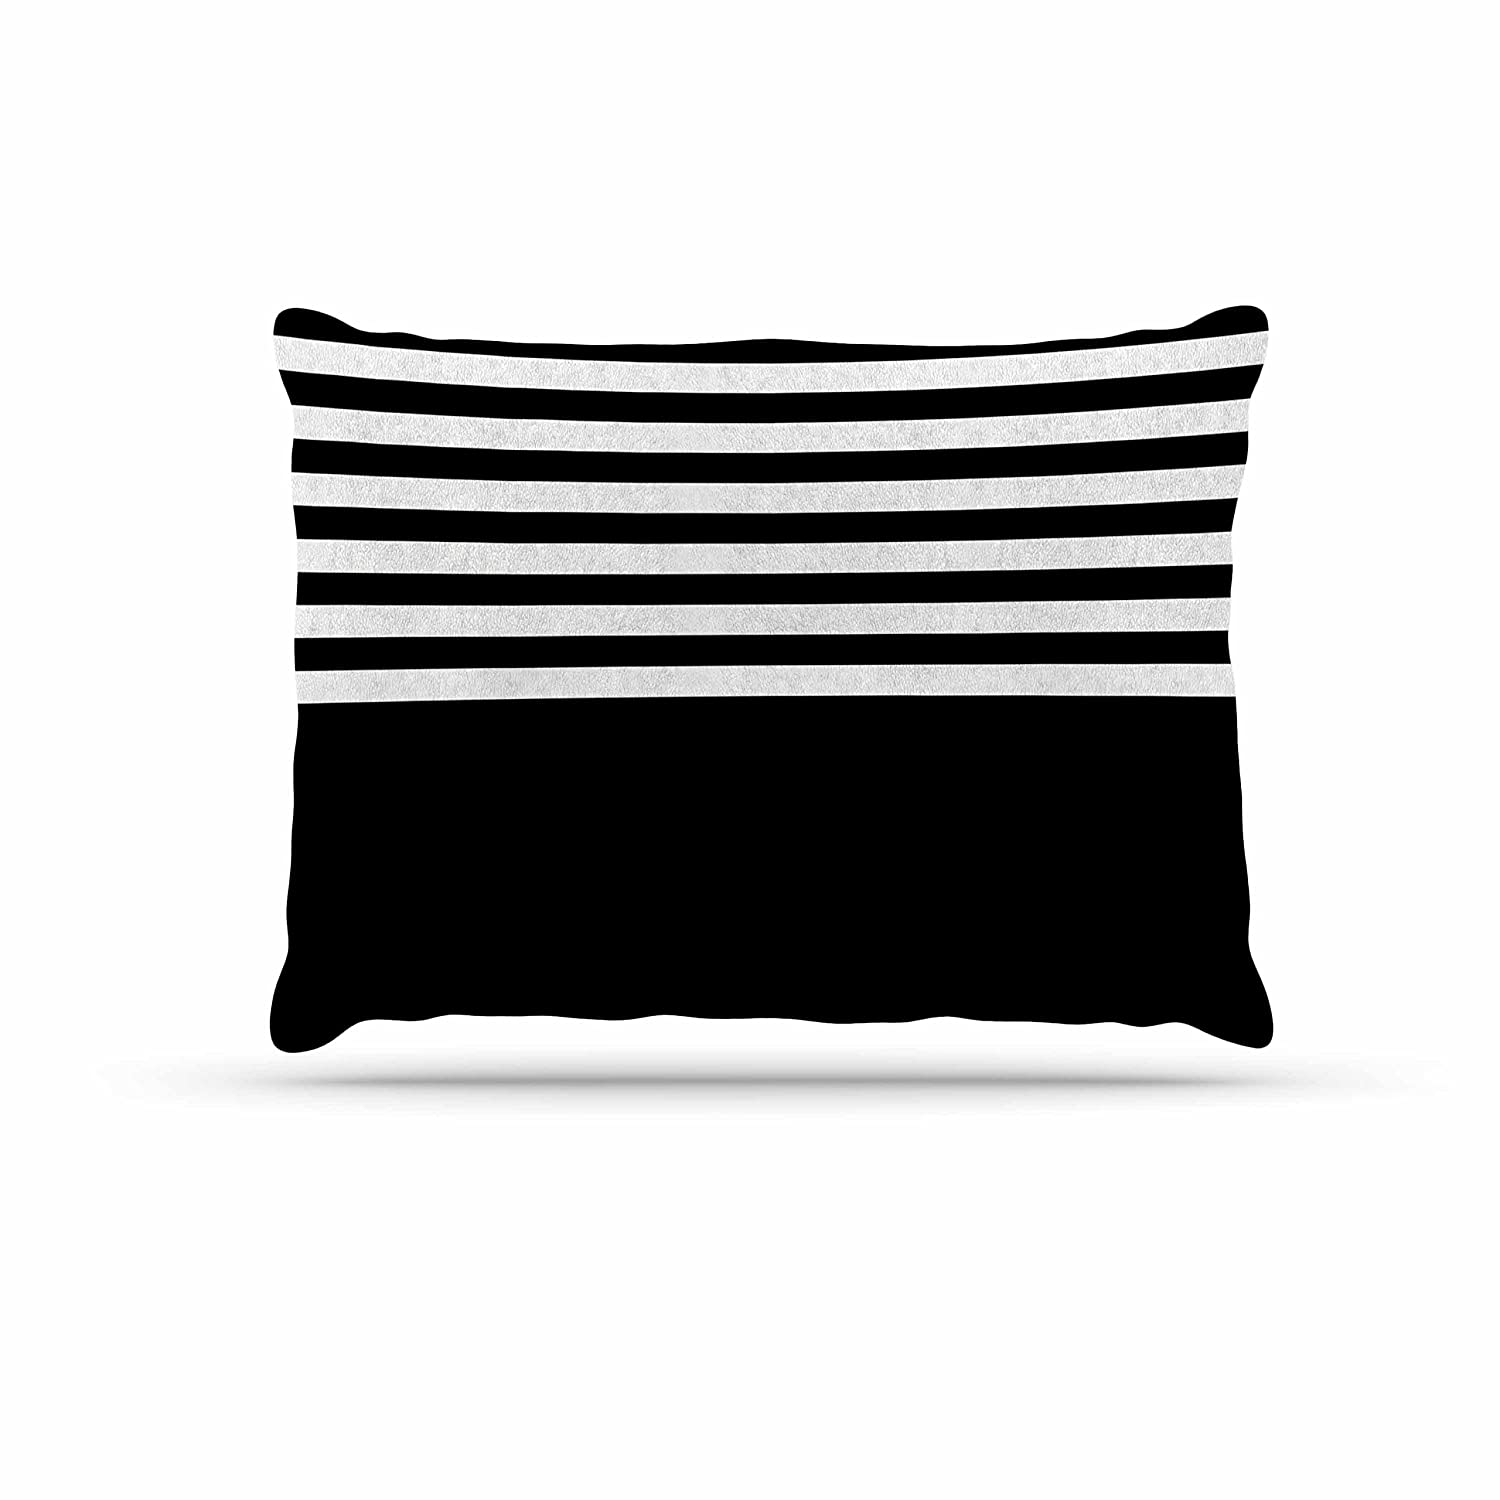 KESS InHouse Trebam Roletna Black White Dog Bed, 50  x 40